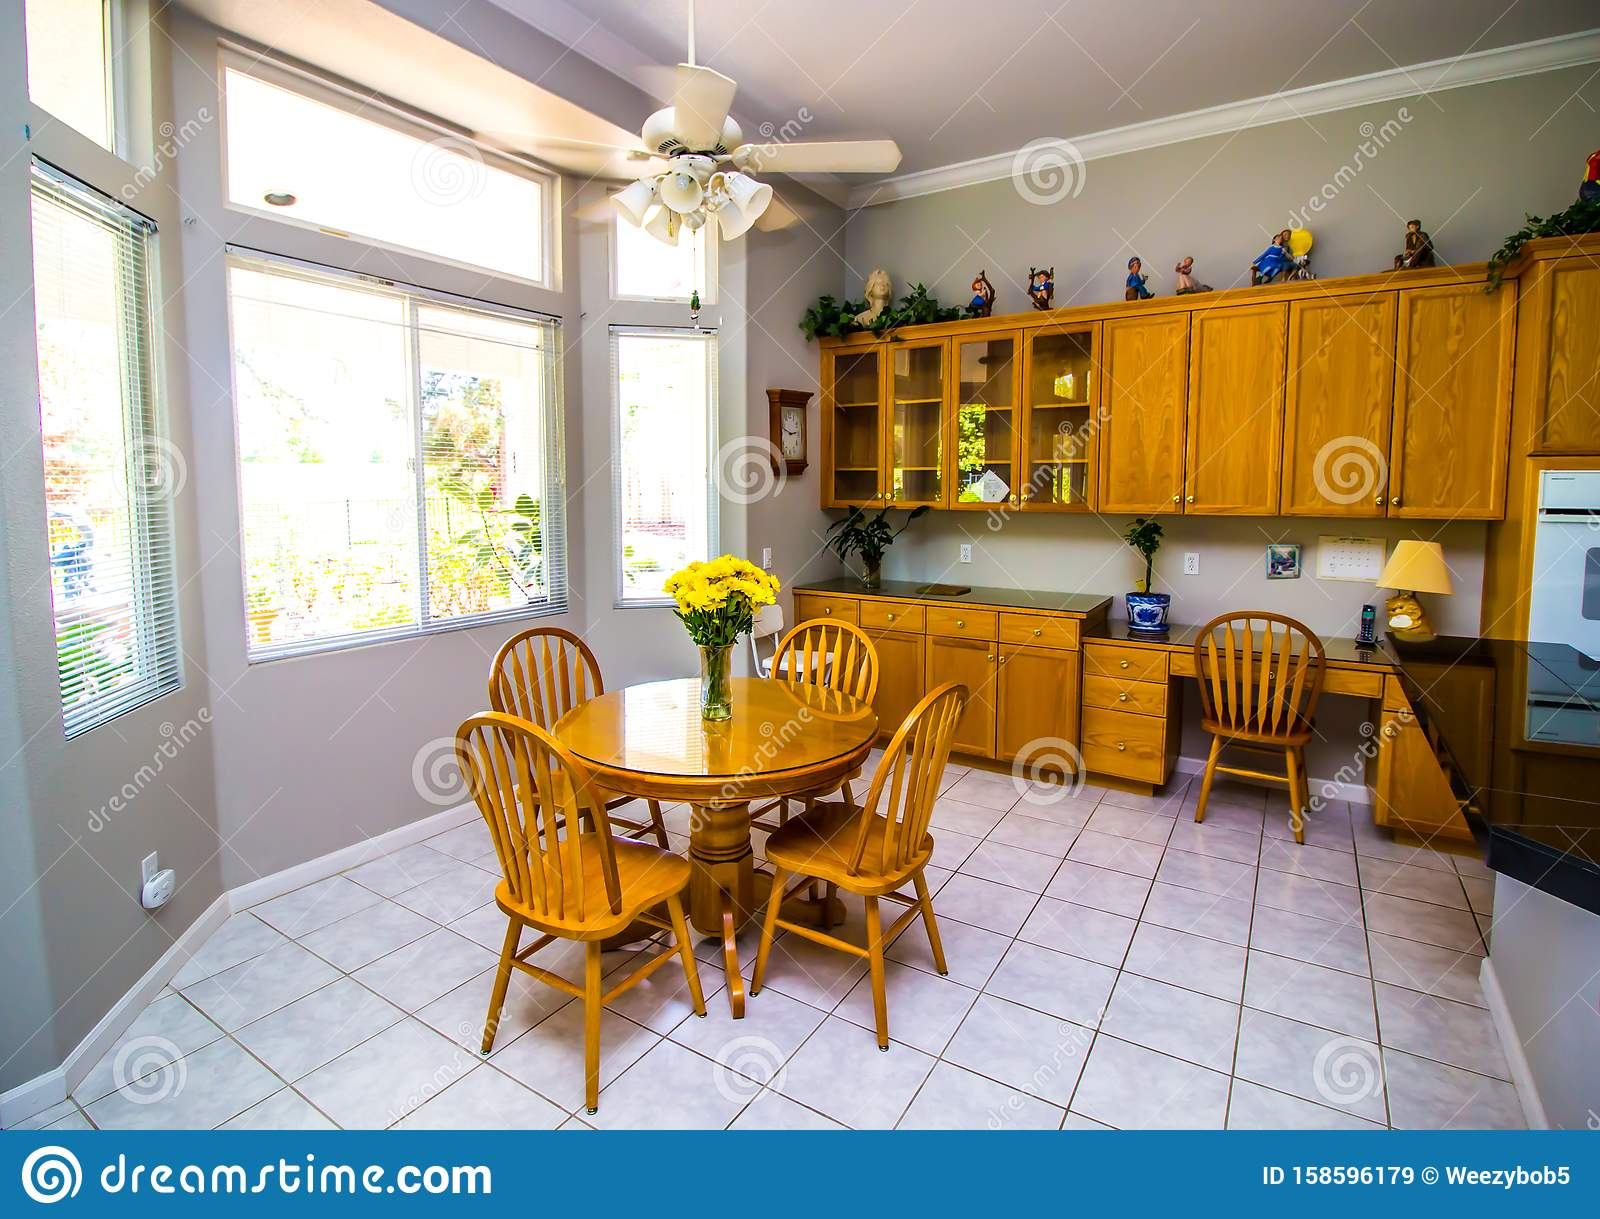 Kitchen Eating Area Stock Images - Download 847 Royalty ...